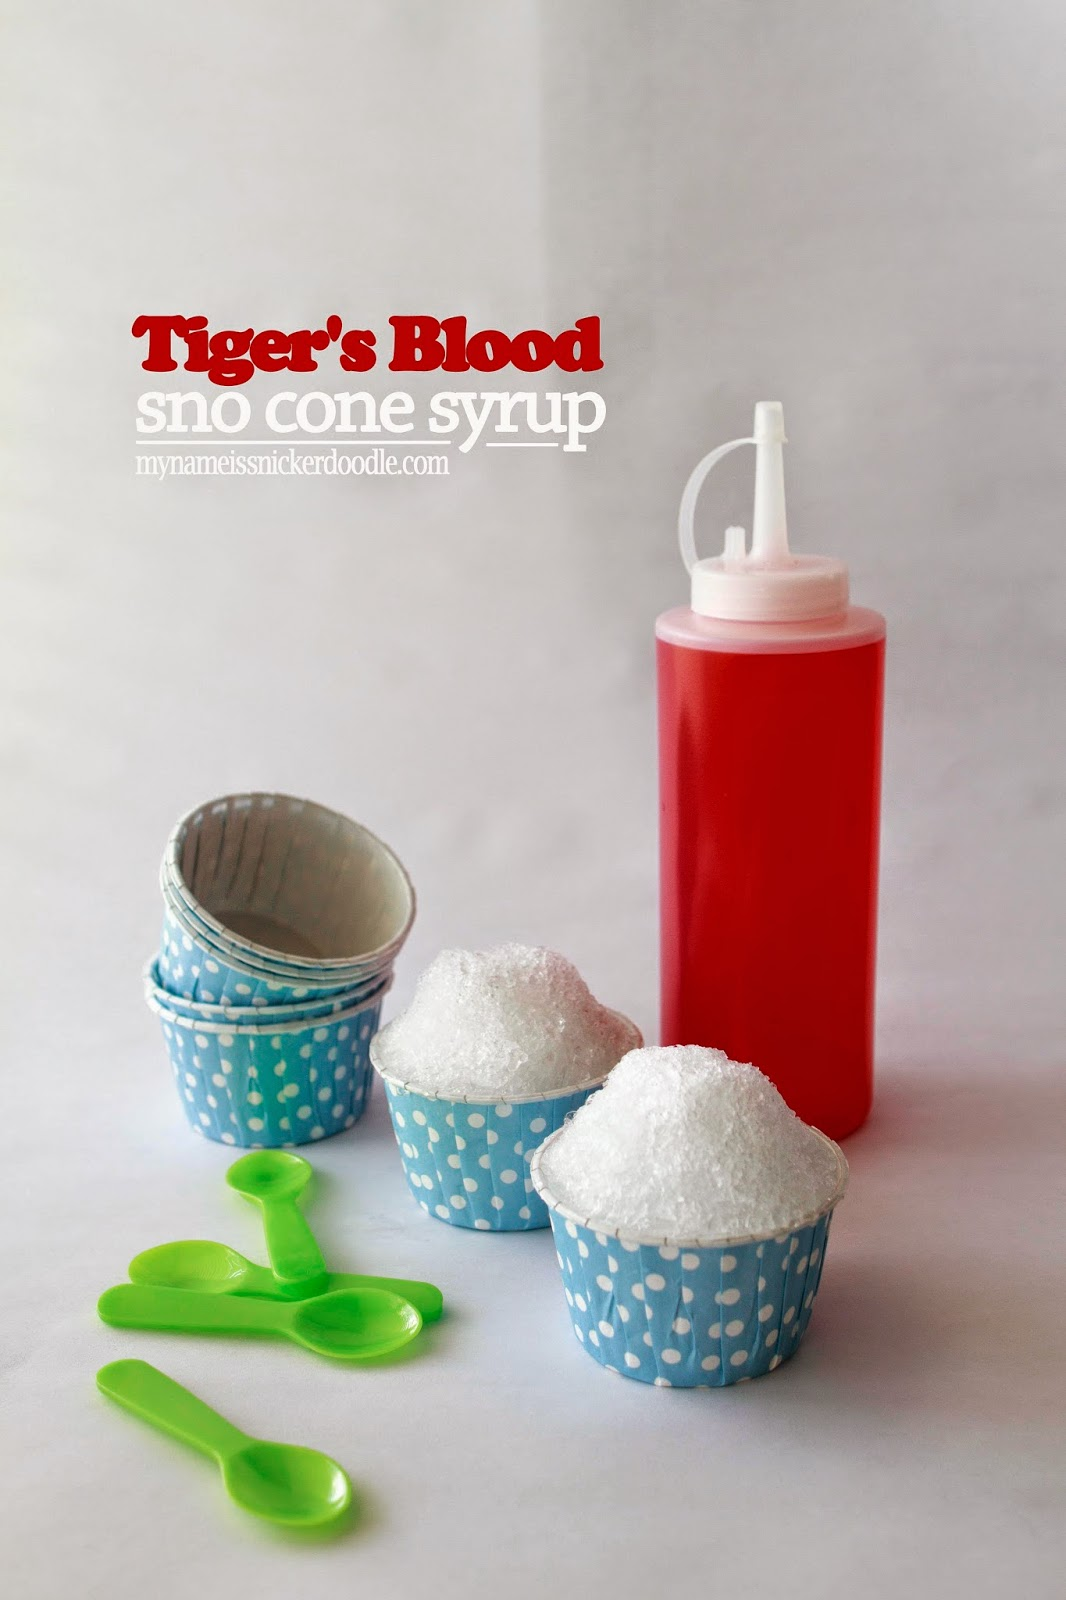 Tiger's Blood Sno Cone Syrup